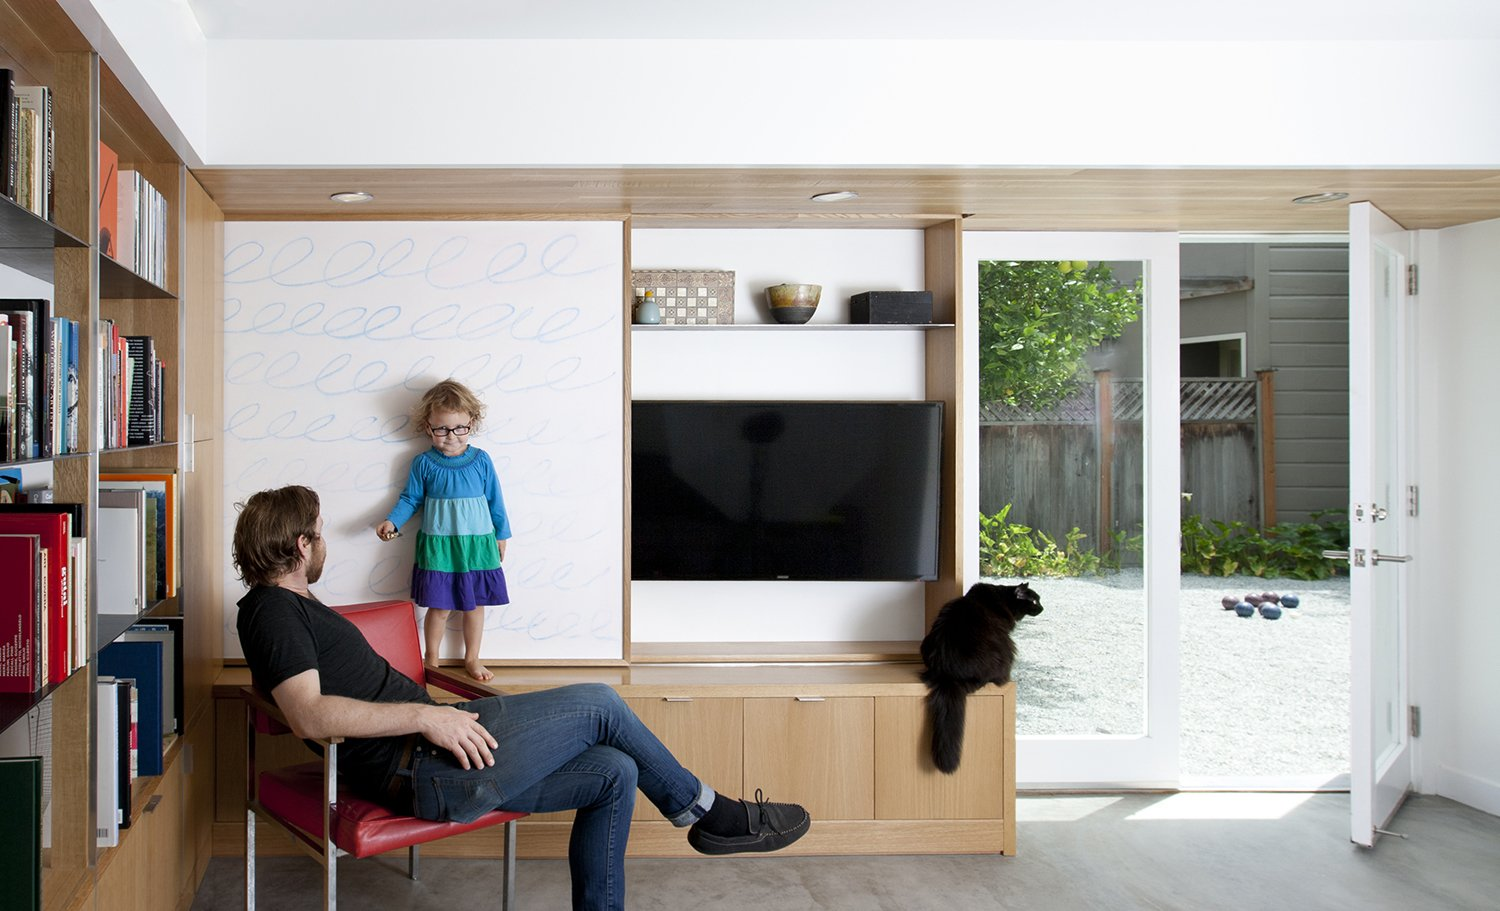 "The sliding wall panel is seen in its open position. In addition to several design elements serving multiple functions, great care was taken to develop a compelling design within the constraints of existing conditions. The remodel was confined to the existing building envelope, leaving the original footprint unchanged, but adding about 650 square feet of habitable space in the process. ""The plans,"" explains Paré-Mayer, ""respected existing structural conditions where possible to save on cost."" The finished concrete floor is, in fact, the structural slab, an efficient choice from a cost and materials perspective. The existing footings, which were wider than the framed interior walls, were kept intact in their original condition and location. The team was able to cleverly design around them by building usable closed storage to conceal the protruding foundation, as seen at the base of the media built-in."